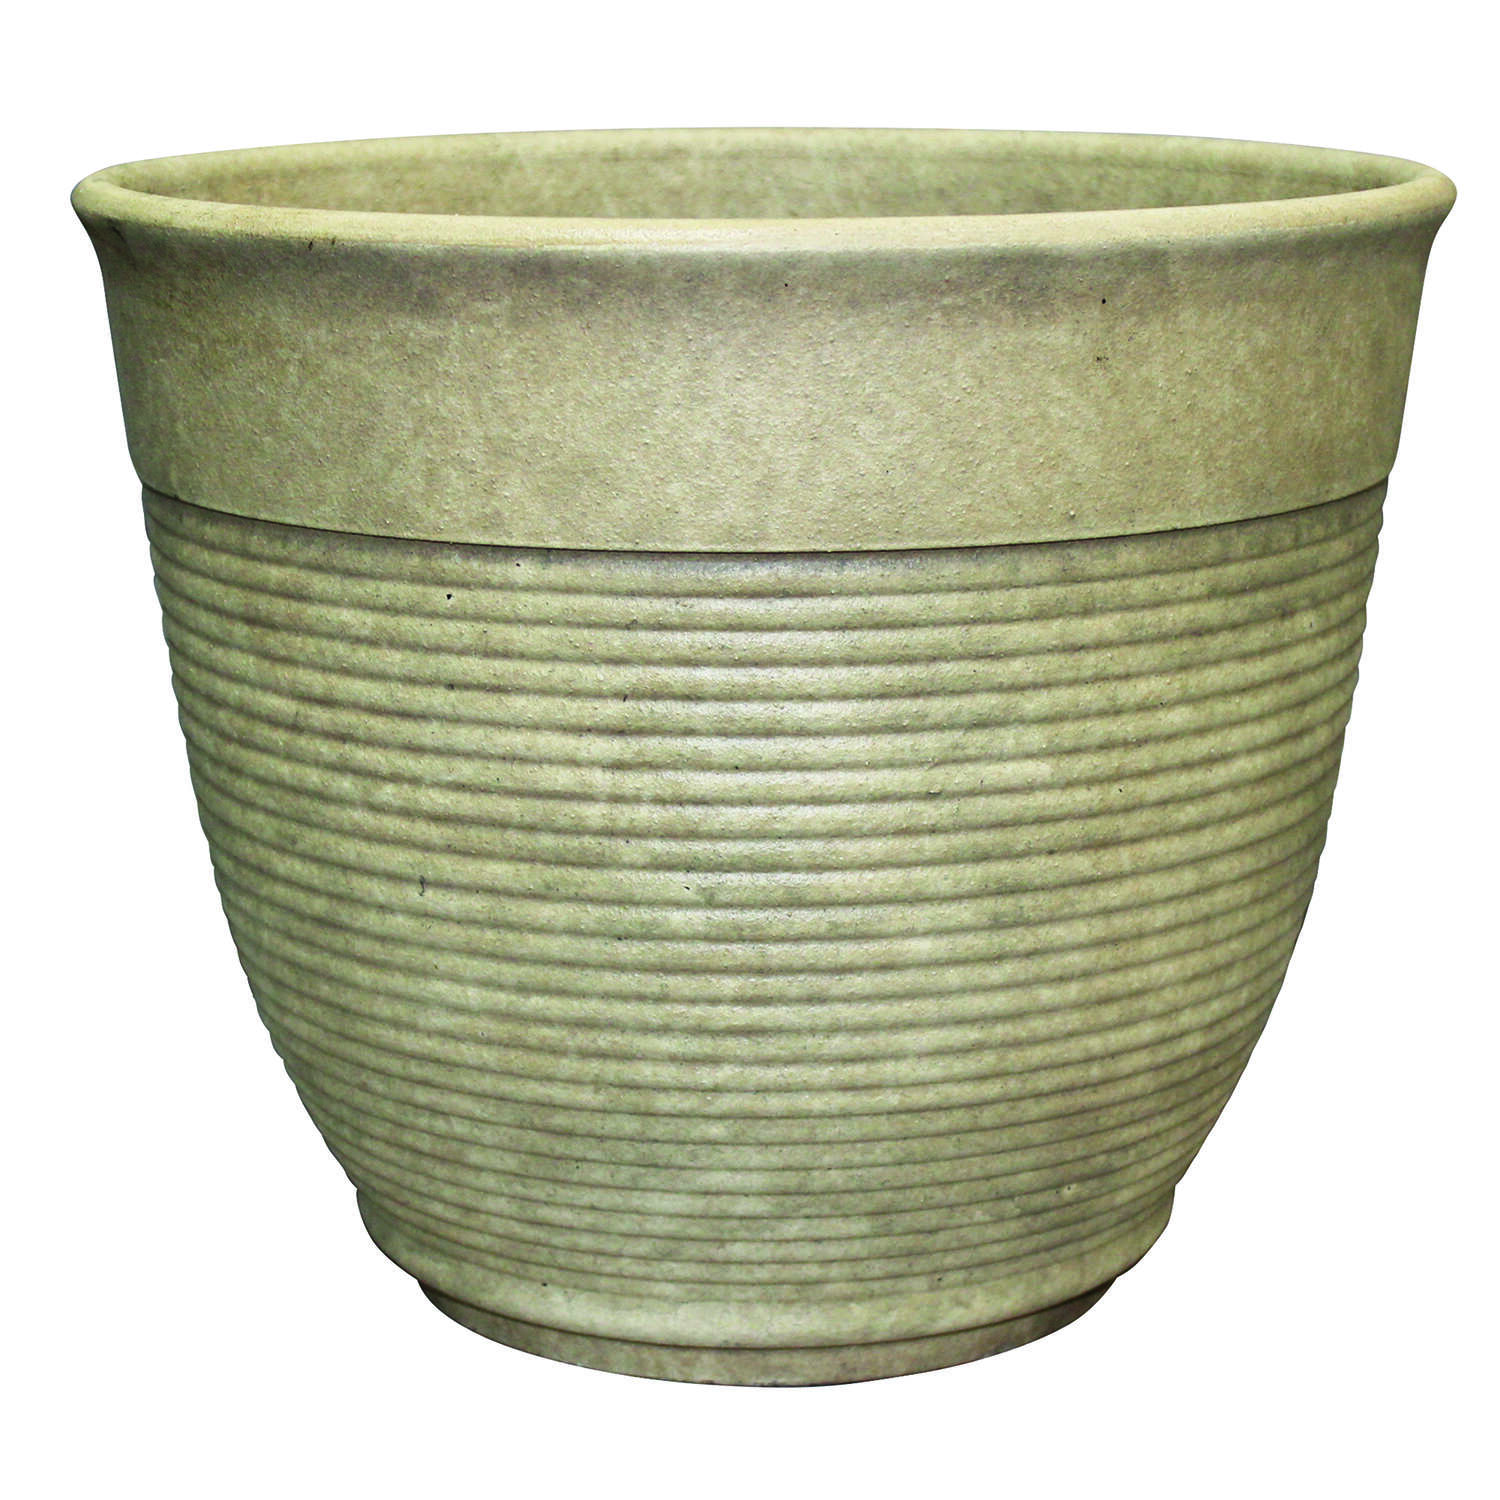 Southern Patio  12.6 in. H x 14.76 in. D x 14.6 in. Dia. Resin  Multi-Ring  Planter  Sand